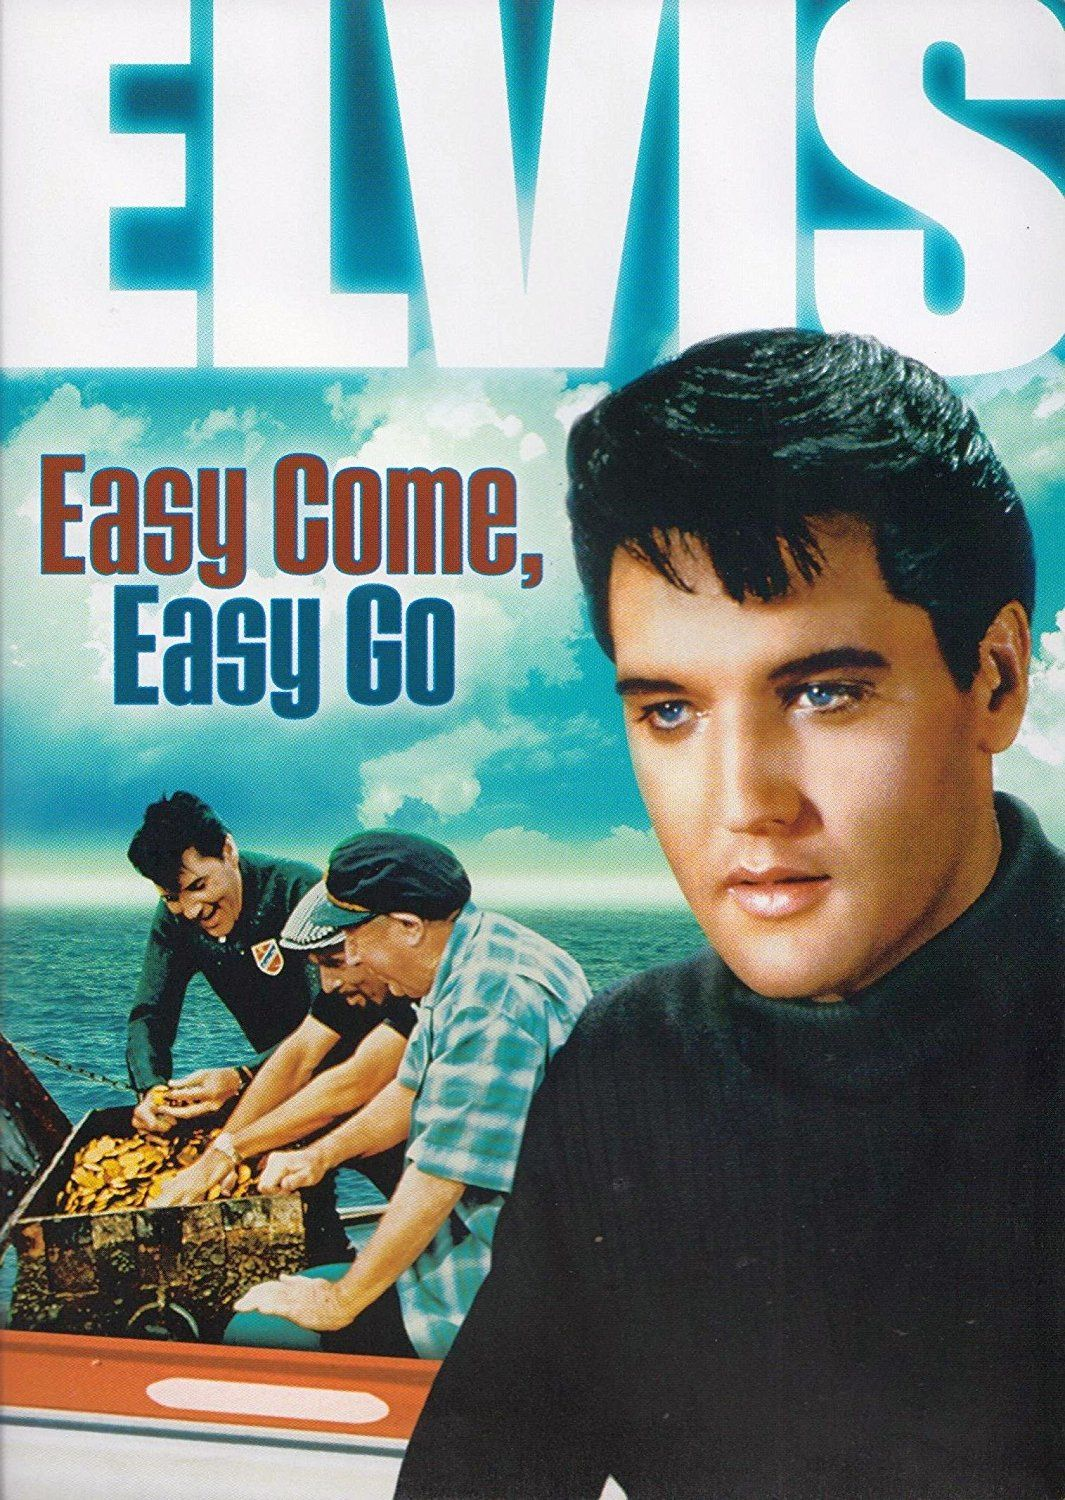 Pin by Kari Coble on My Movie Collection Elvis presley